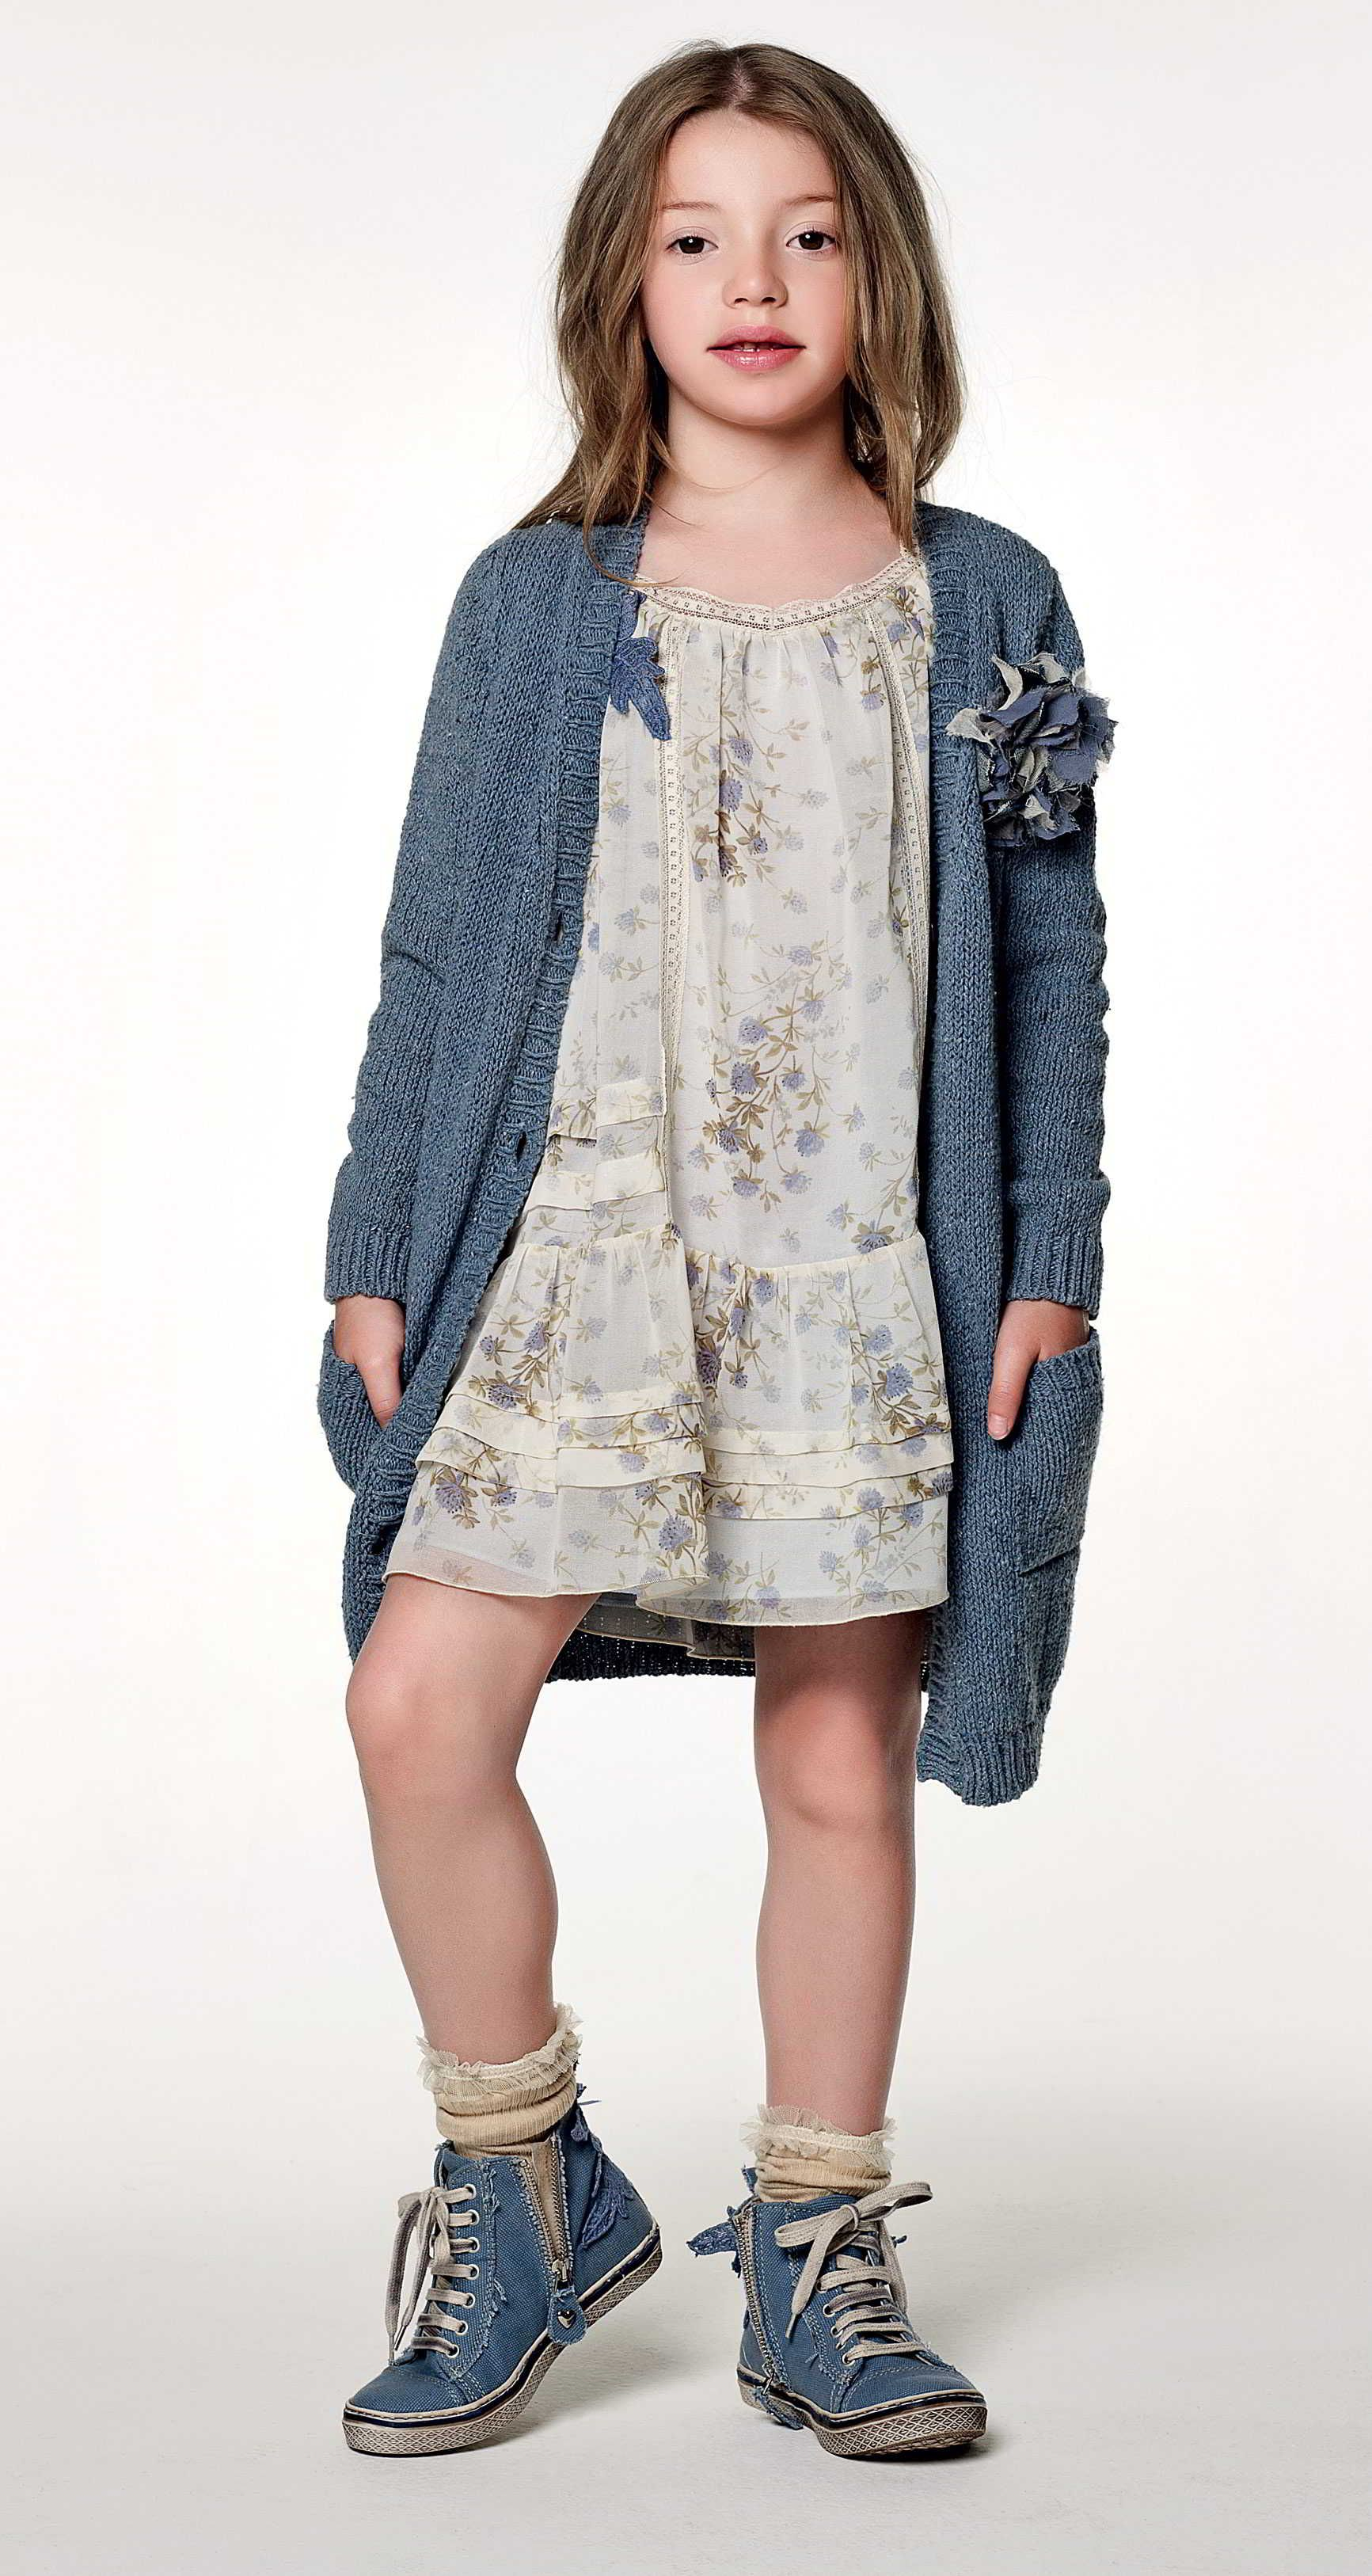 TWIN-SET Girl collection: Knitted long cardigan, dress with floral ...